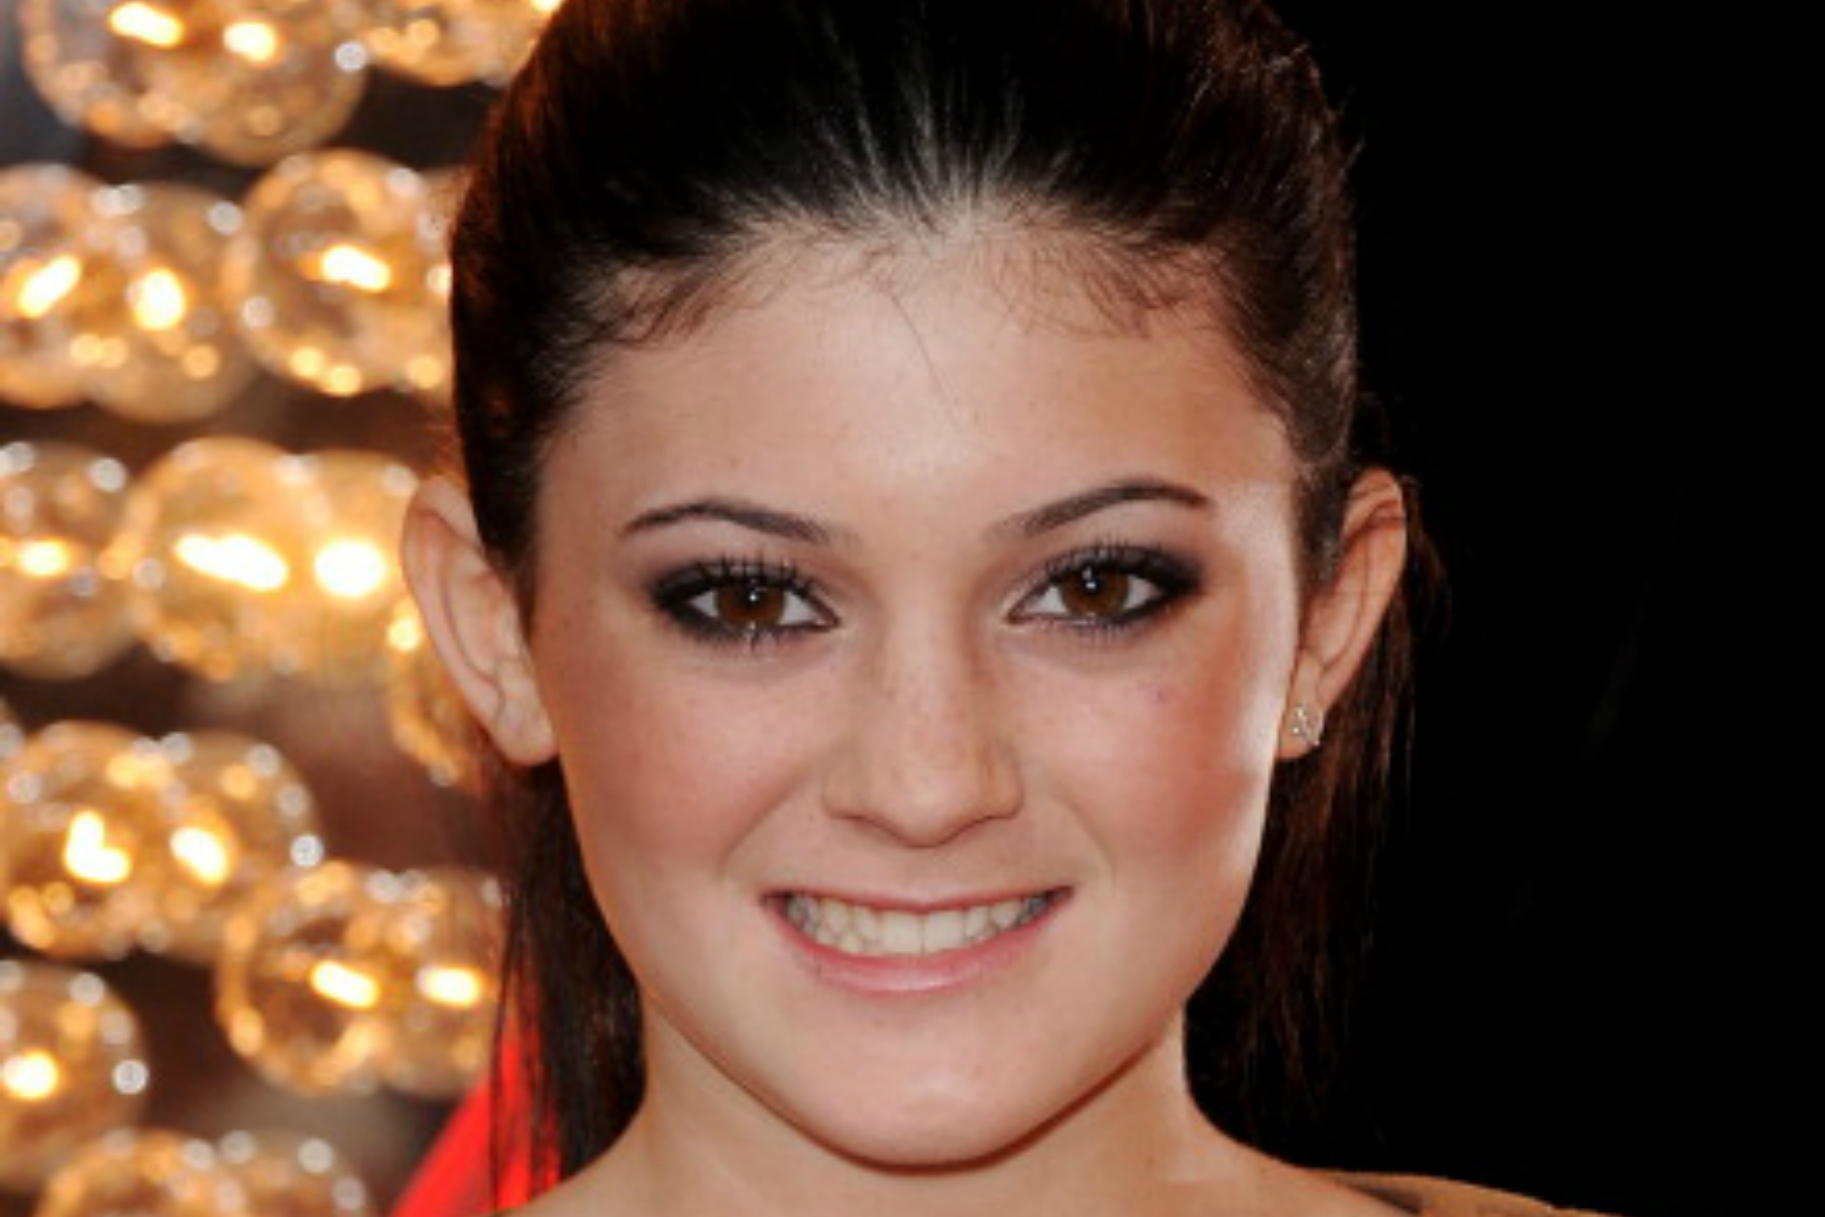 8 Photos Of Kylie Jenner That Are Totally Unrecognizable